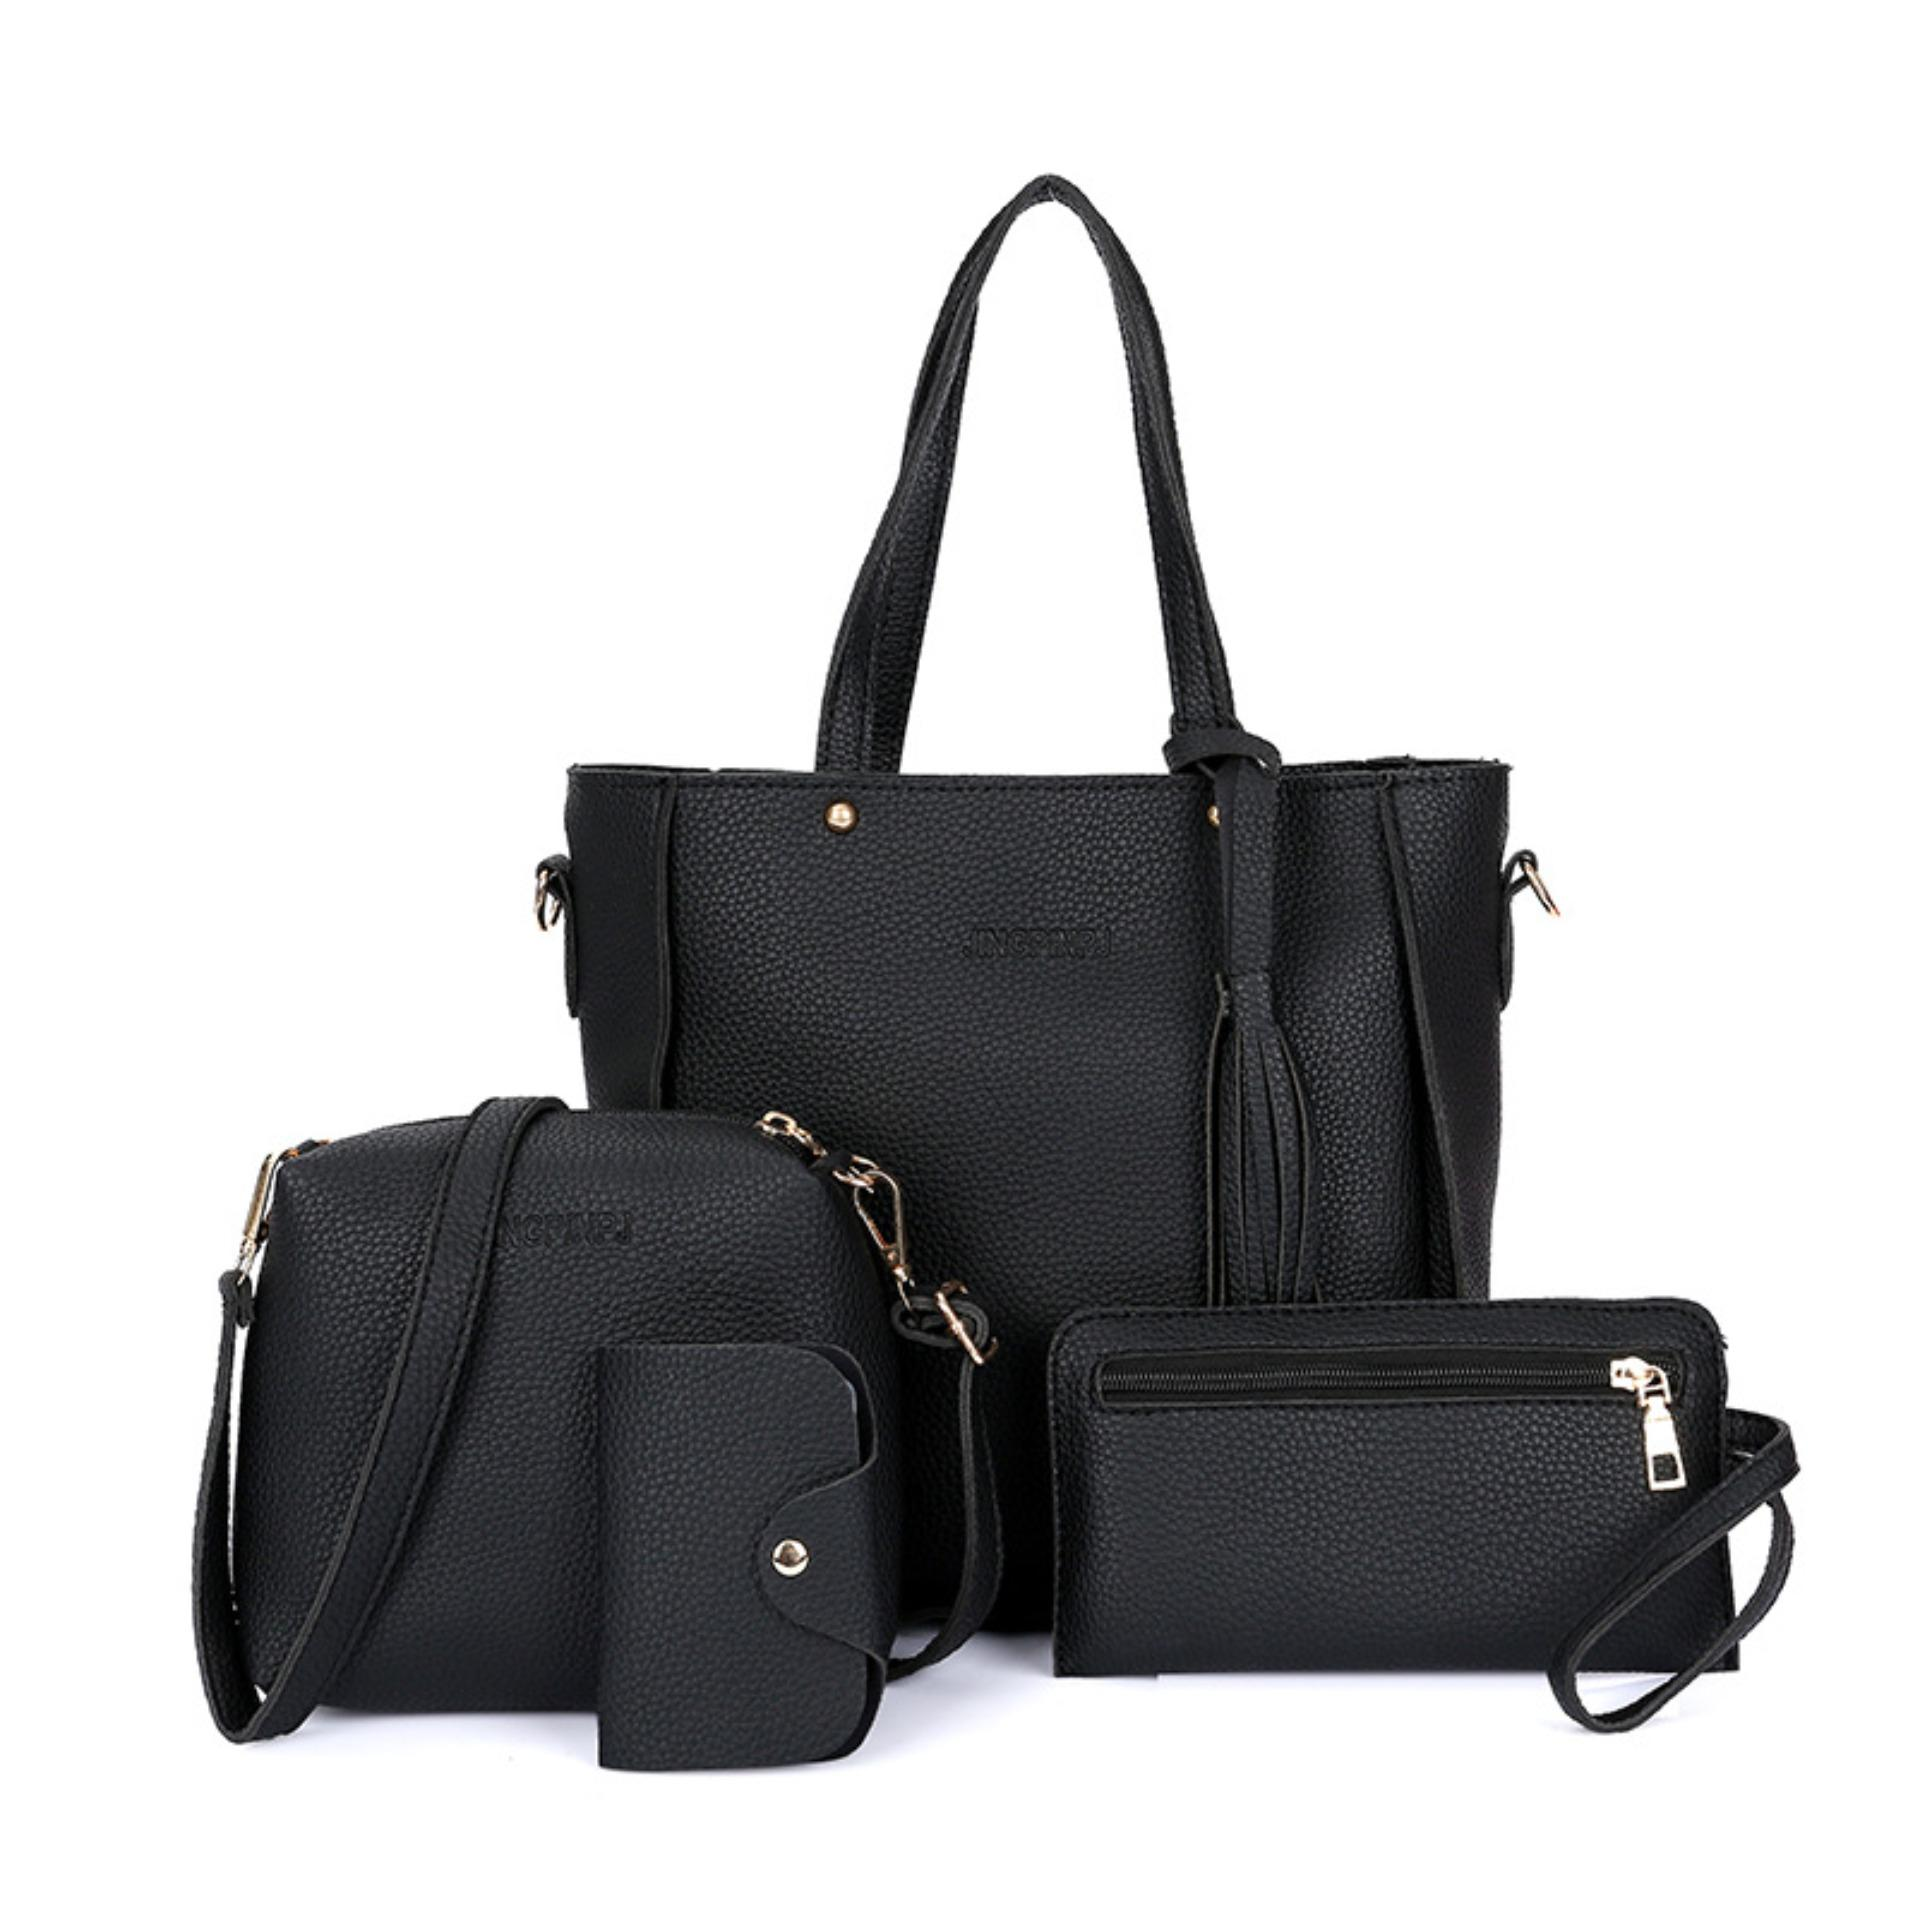 Top Handle Bags for sale - Womens Handle Bags online brands bee3da08c3917